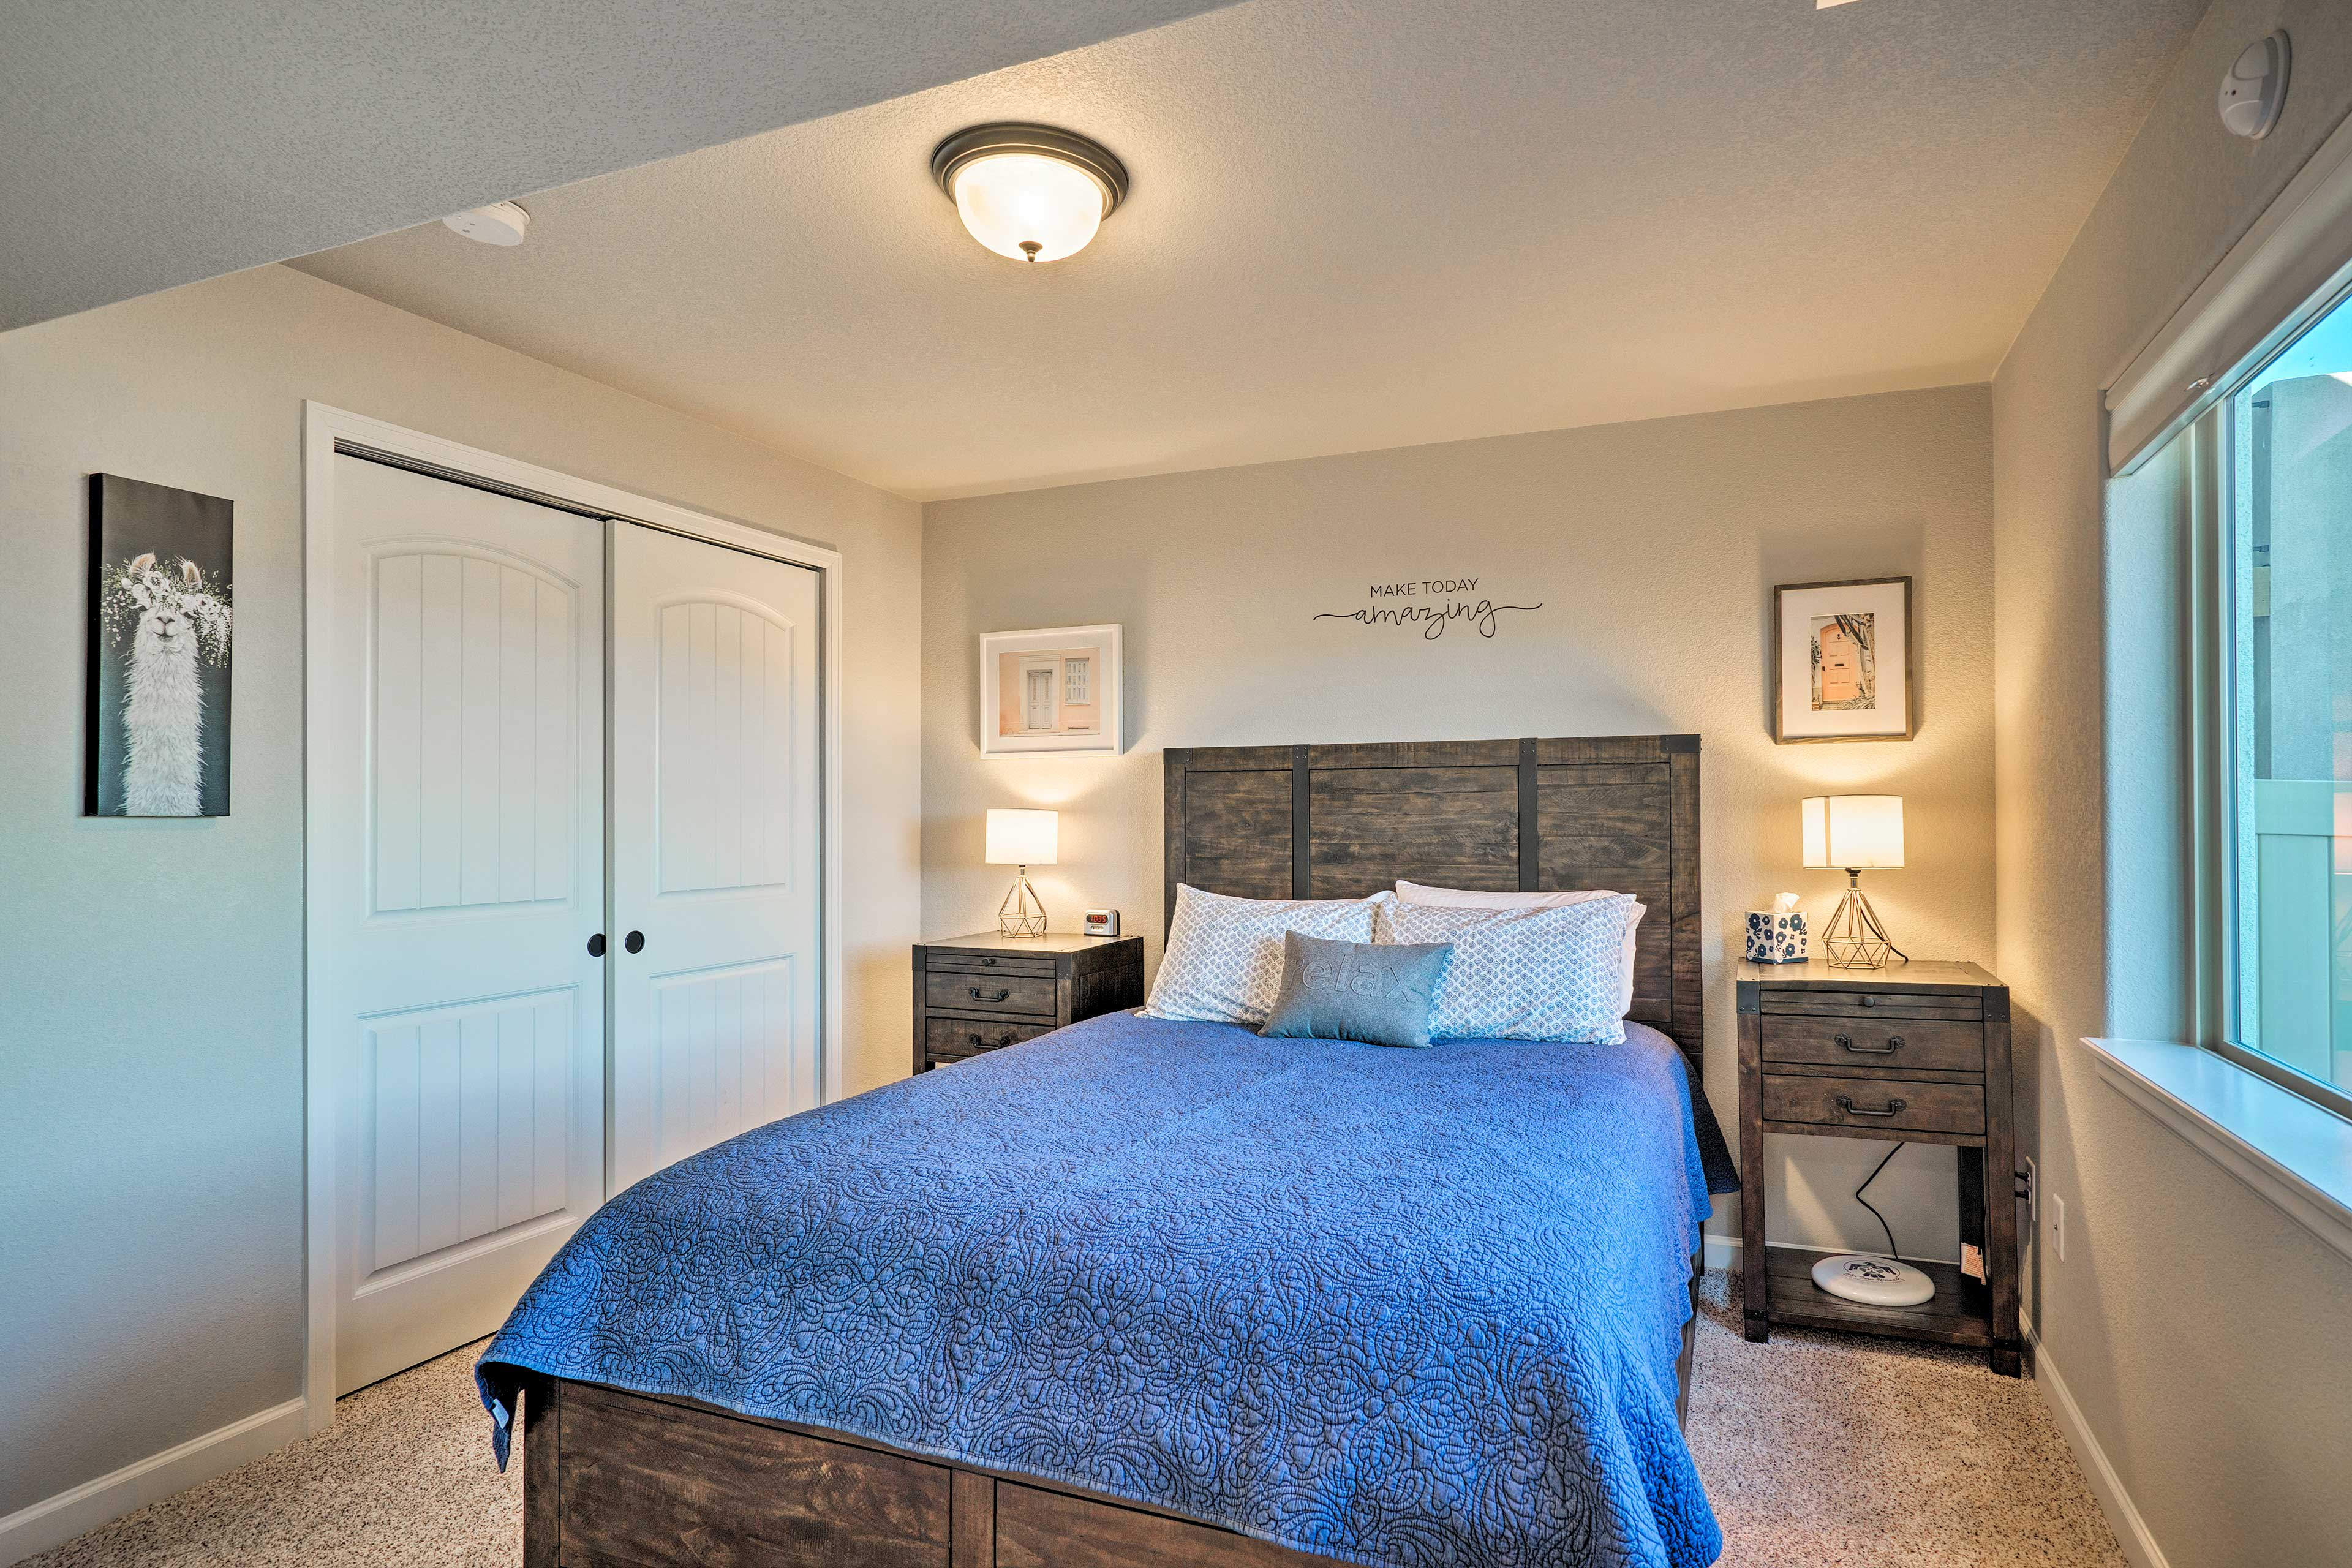 Two guests can curl up under the covers of the queen-sized bed.